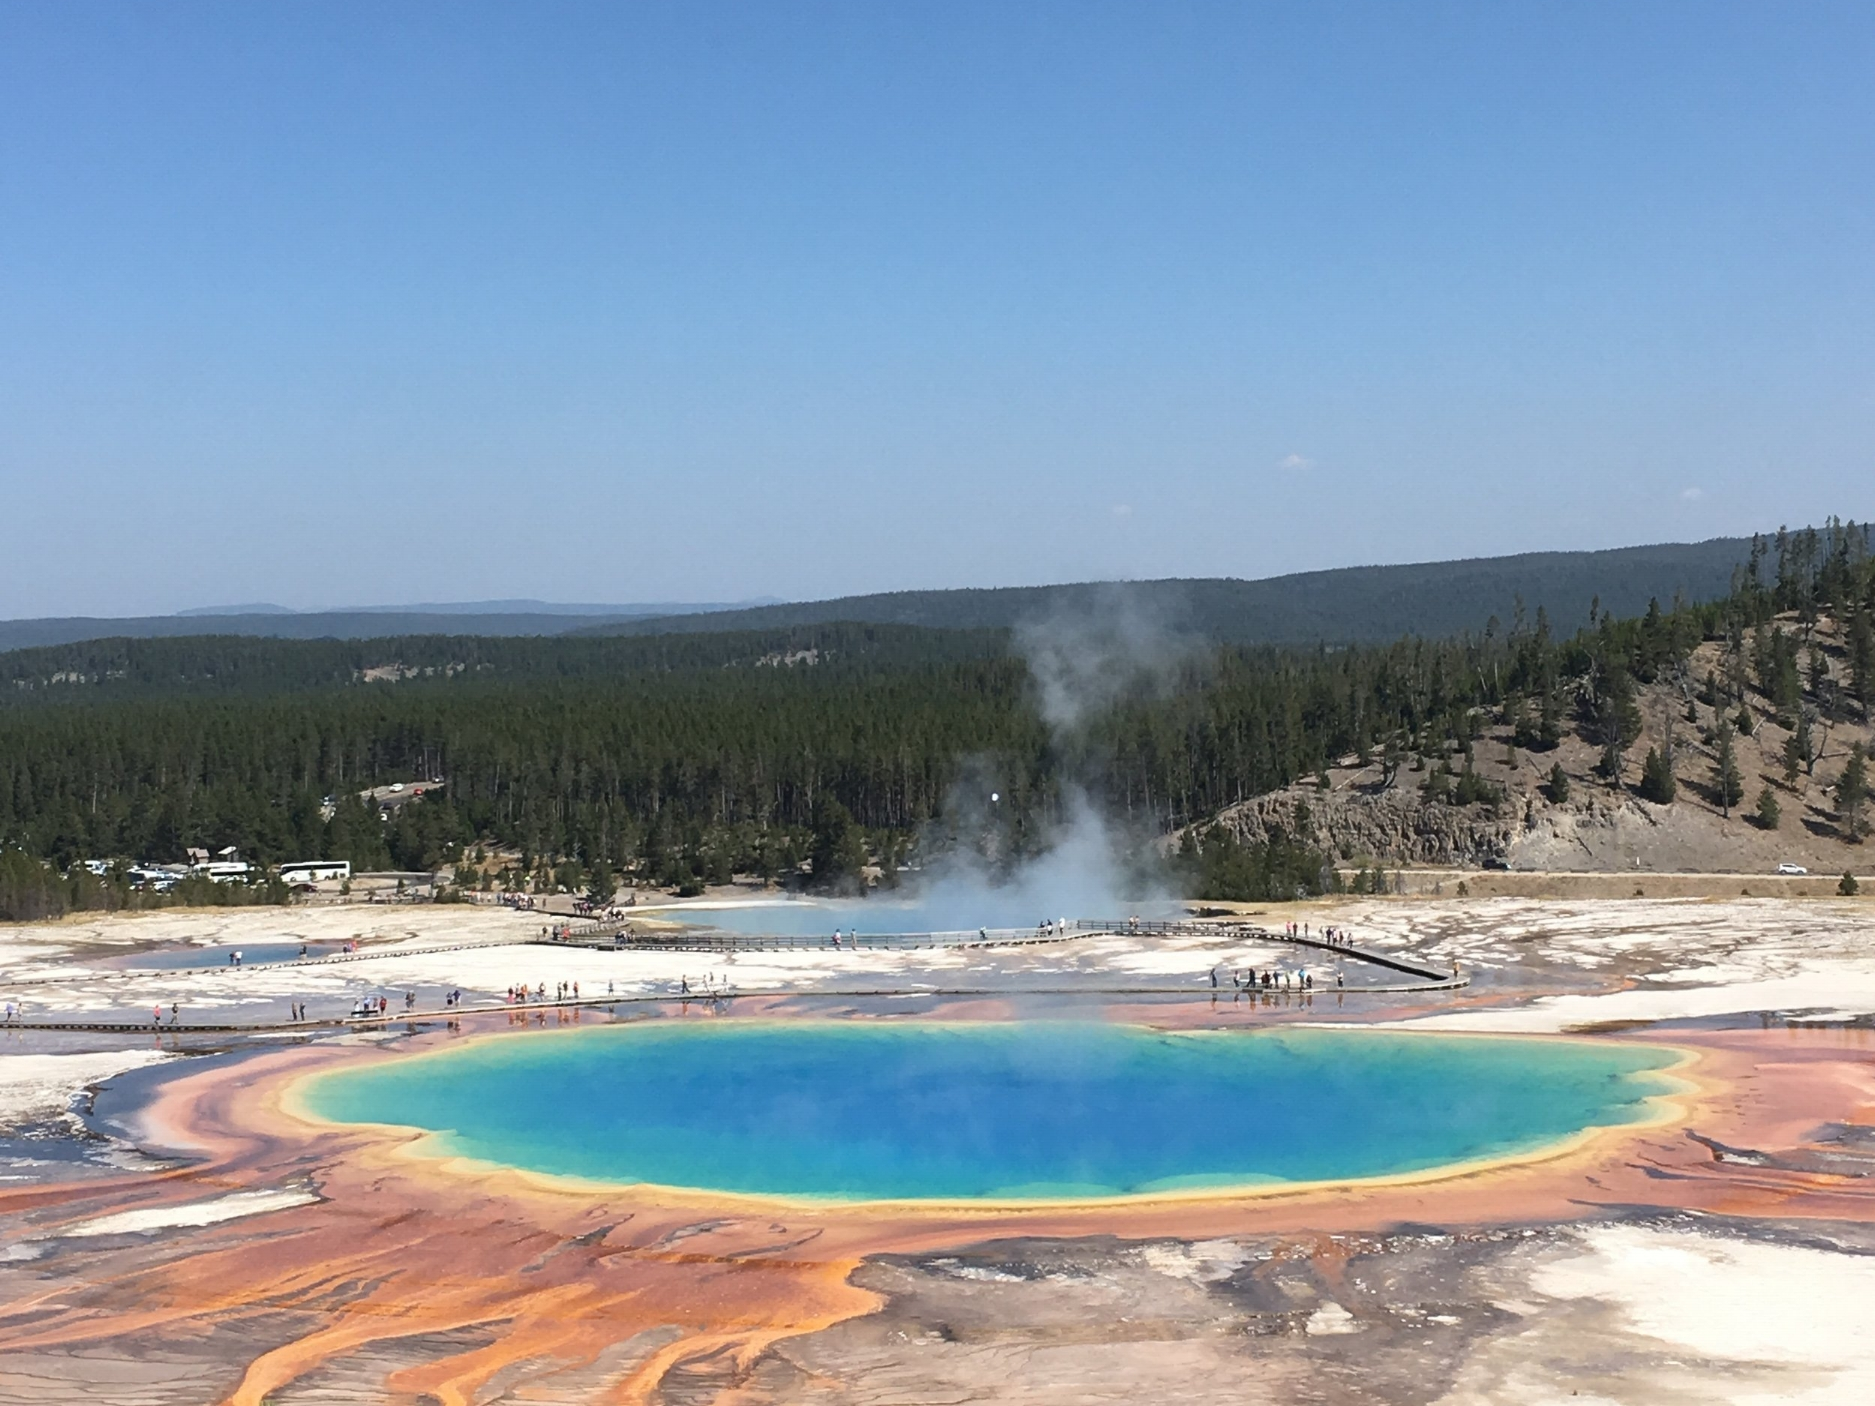 Grand Prismatic Pool in Yellowstone National Park, Wyoming